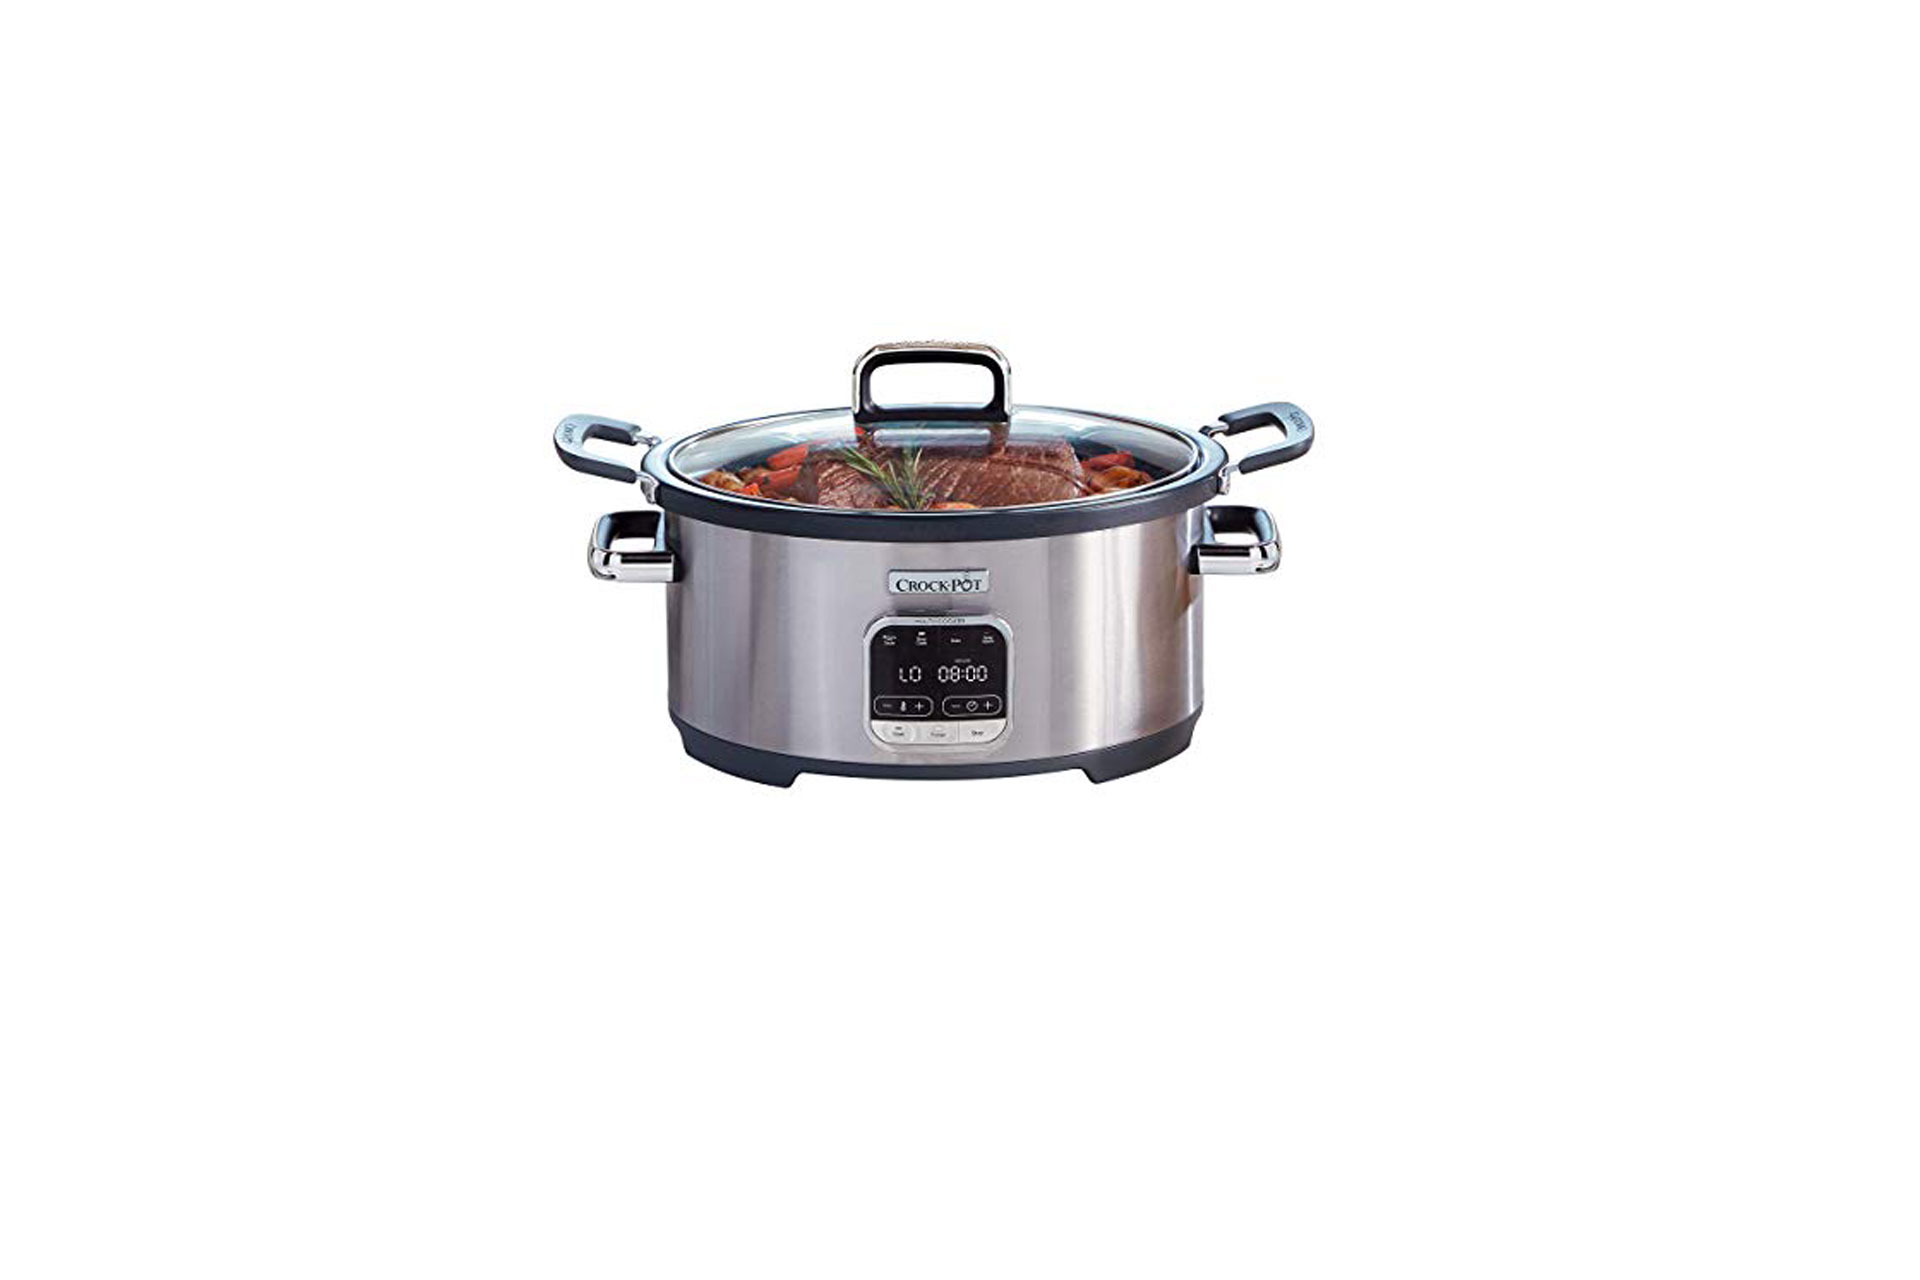 CrockPot; Courtesy of Amazon